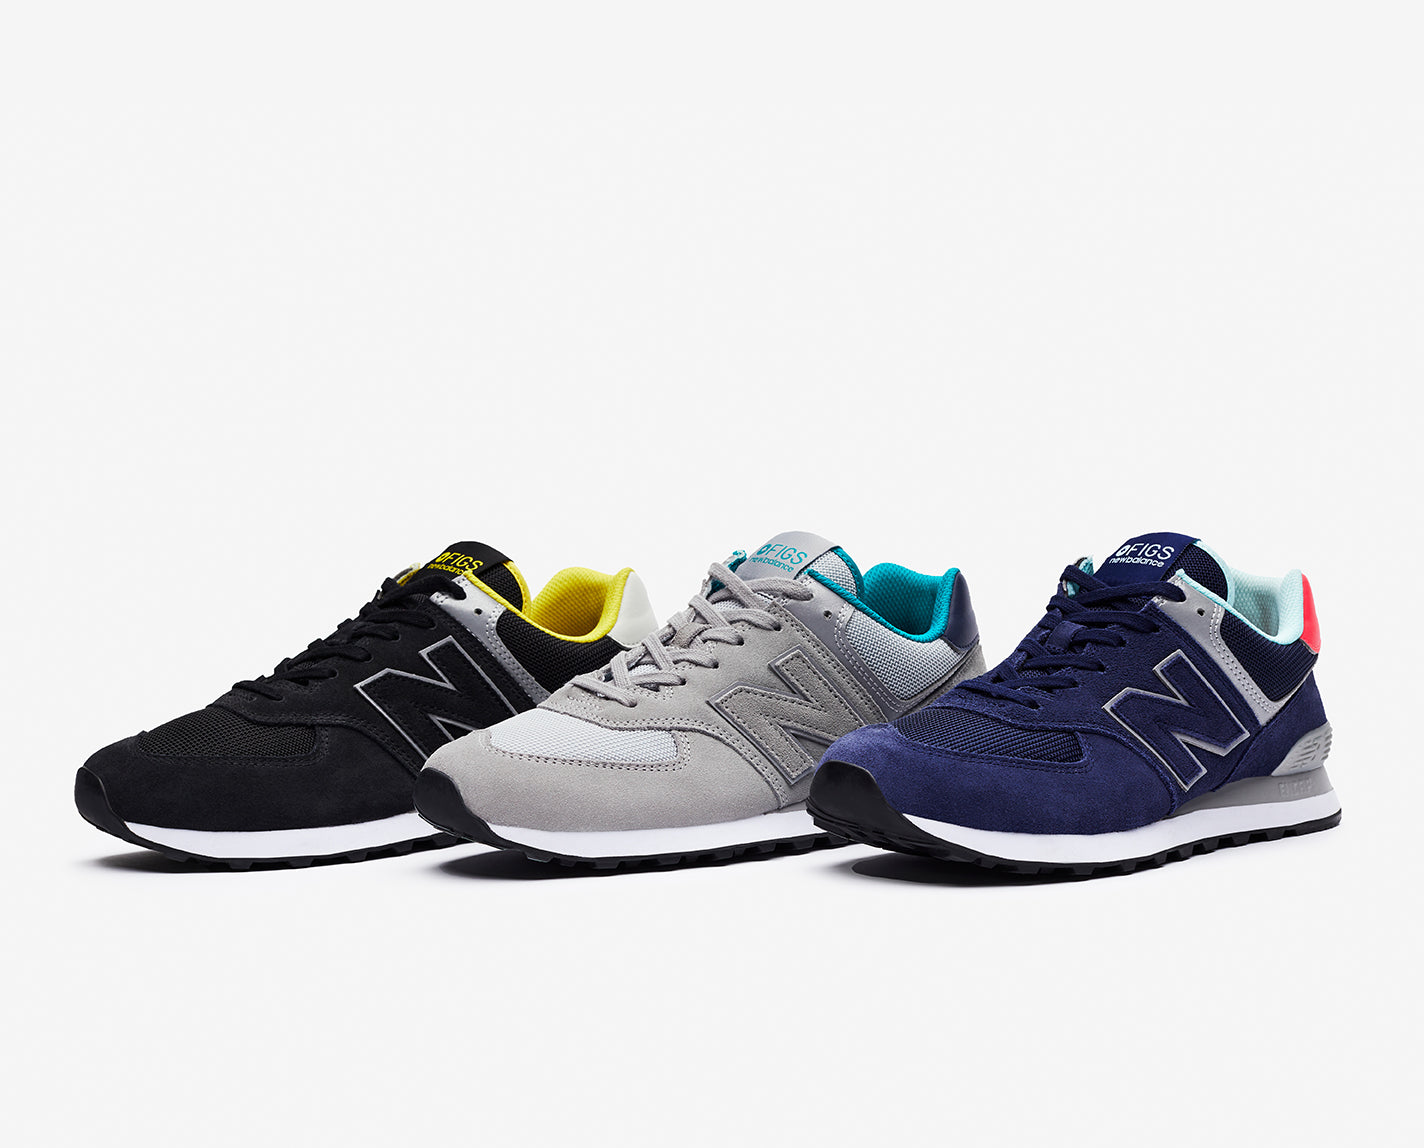 A tried-and-true classic constructed for all-day performance. The FIGS | New Balance 574 Capsule Collection features an iconic silhouette that's always in style, updated with premium materials like powerful ENCAP® midsole technology and super soft and supportive foam cushioning. It's your new go-12+-hours-in-complete-comfort shoe.